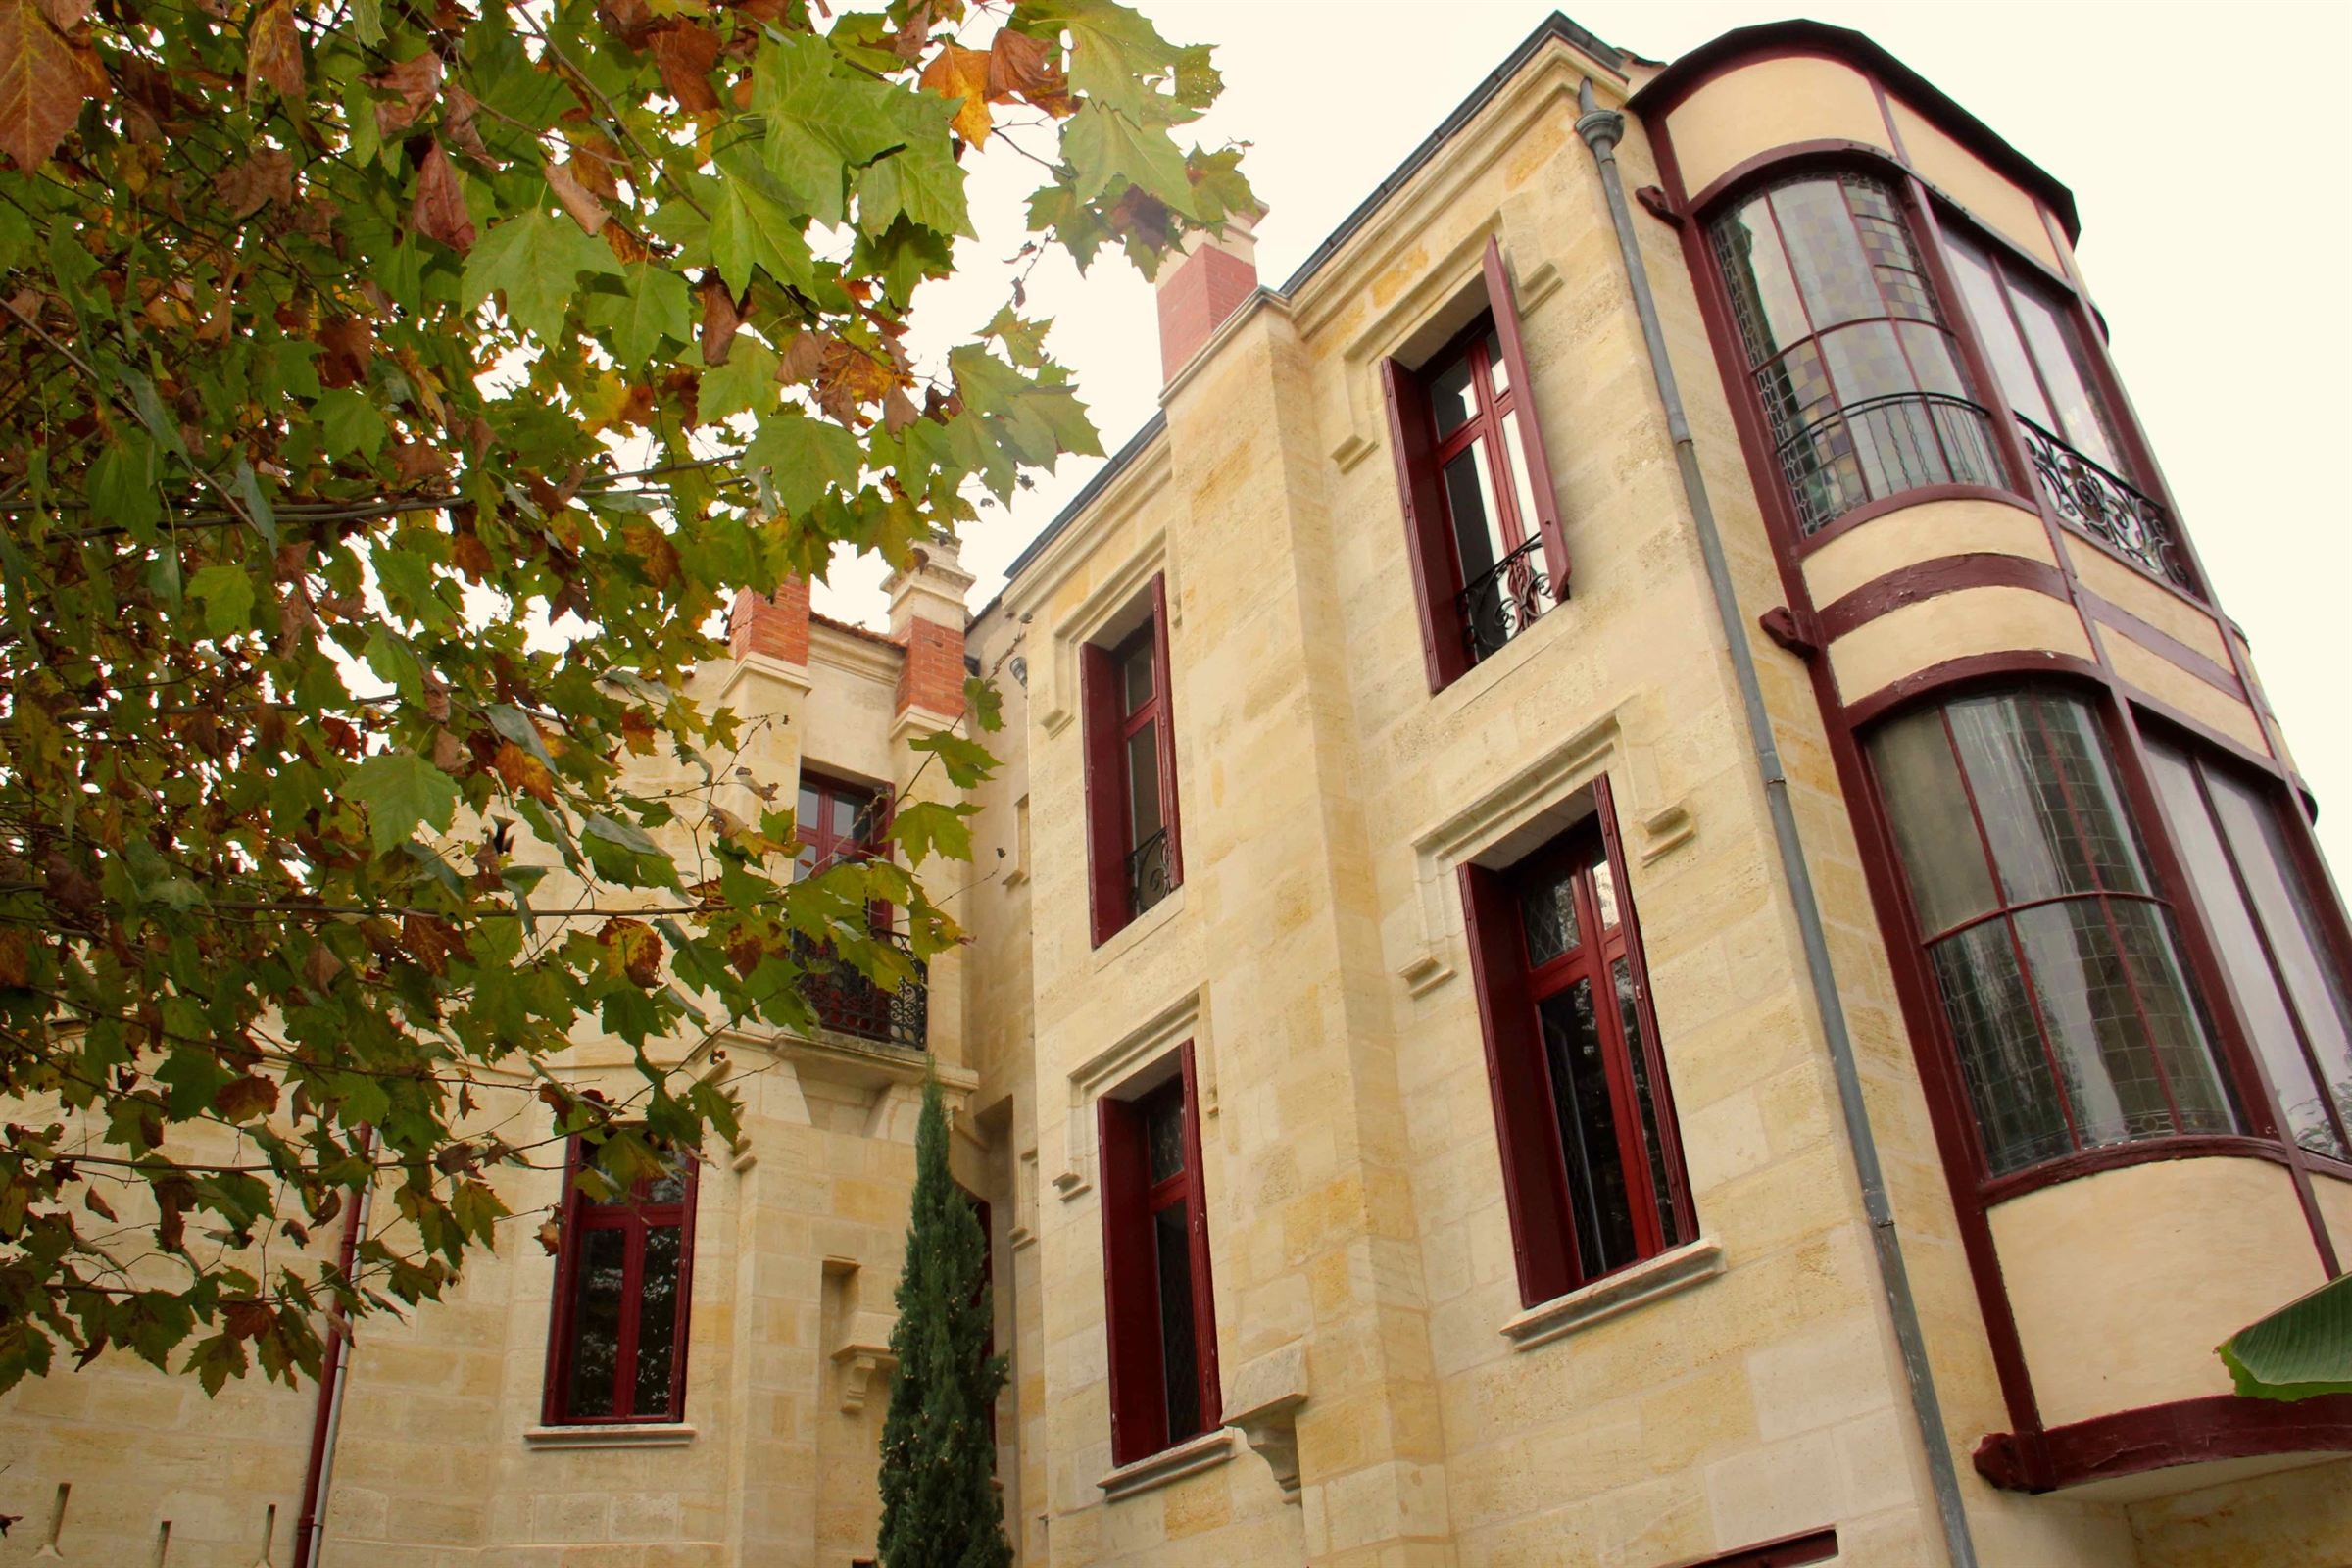 Property For Sale at BORDEAUX ST-GENES - REMARKABLE XVI-XVIIIth C. MANOR IDEAL FOR A FAMILY